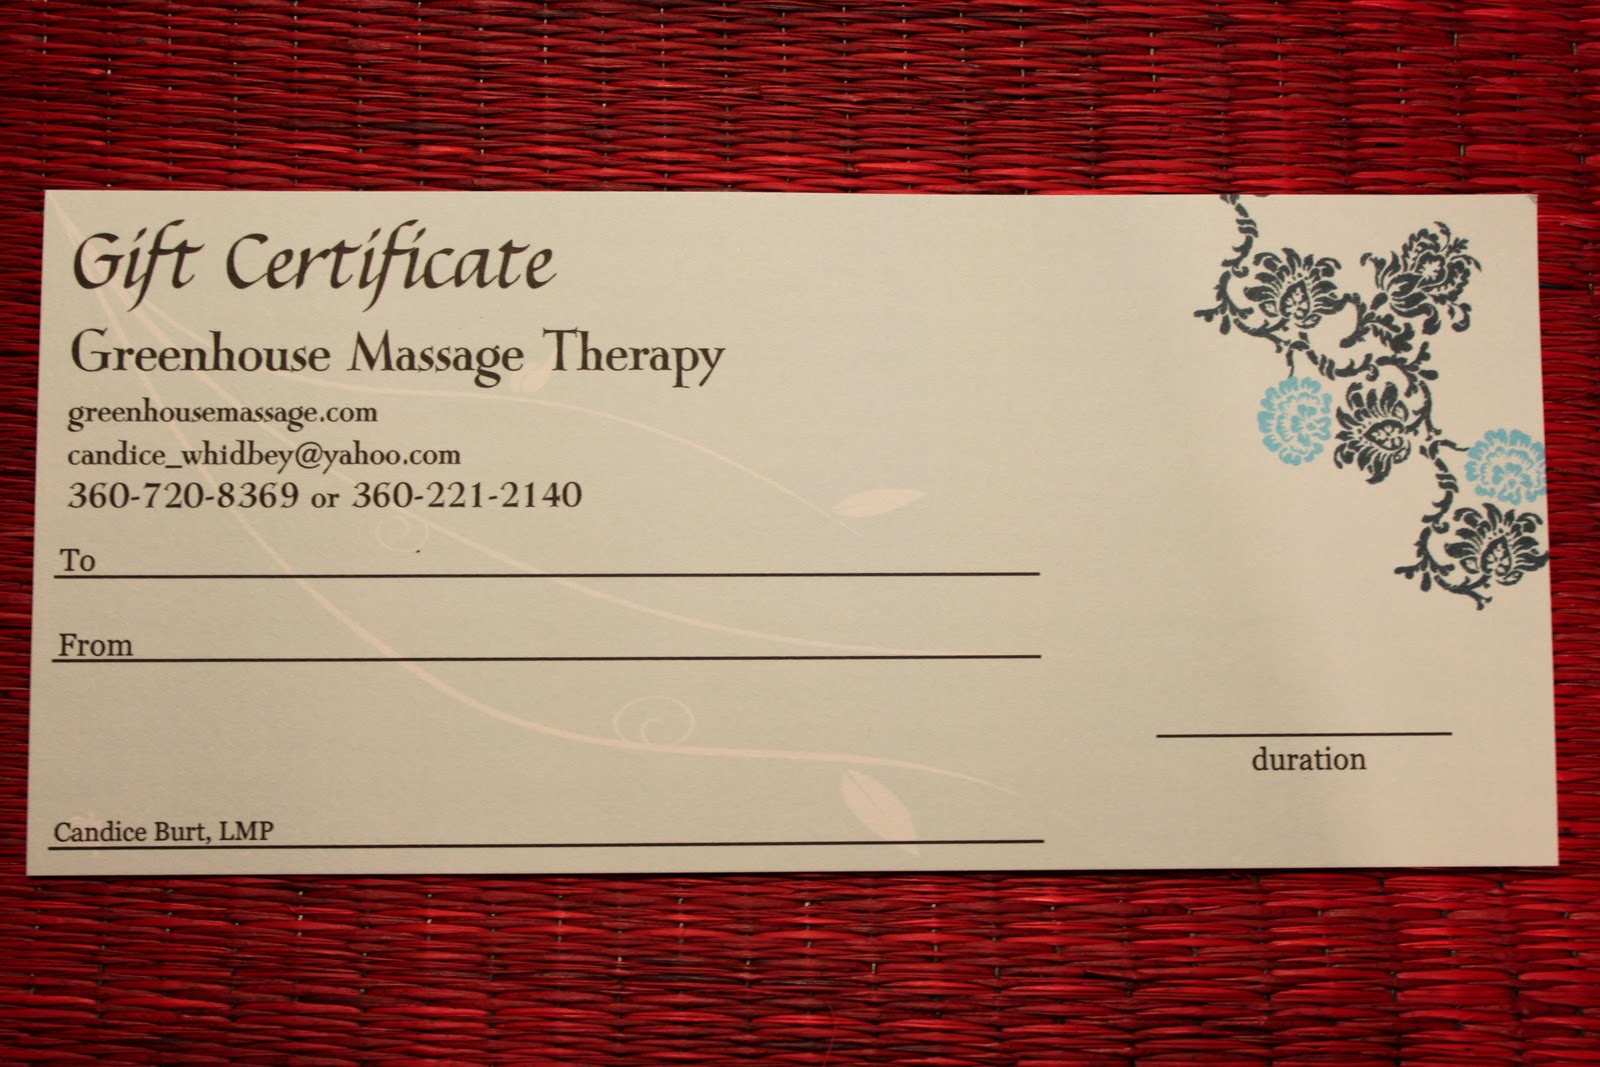 massage gift certificate template resume builder massage gift certificate template 7 massage gift certificate templates sample printable massage gift